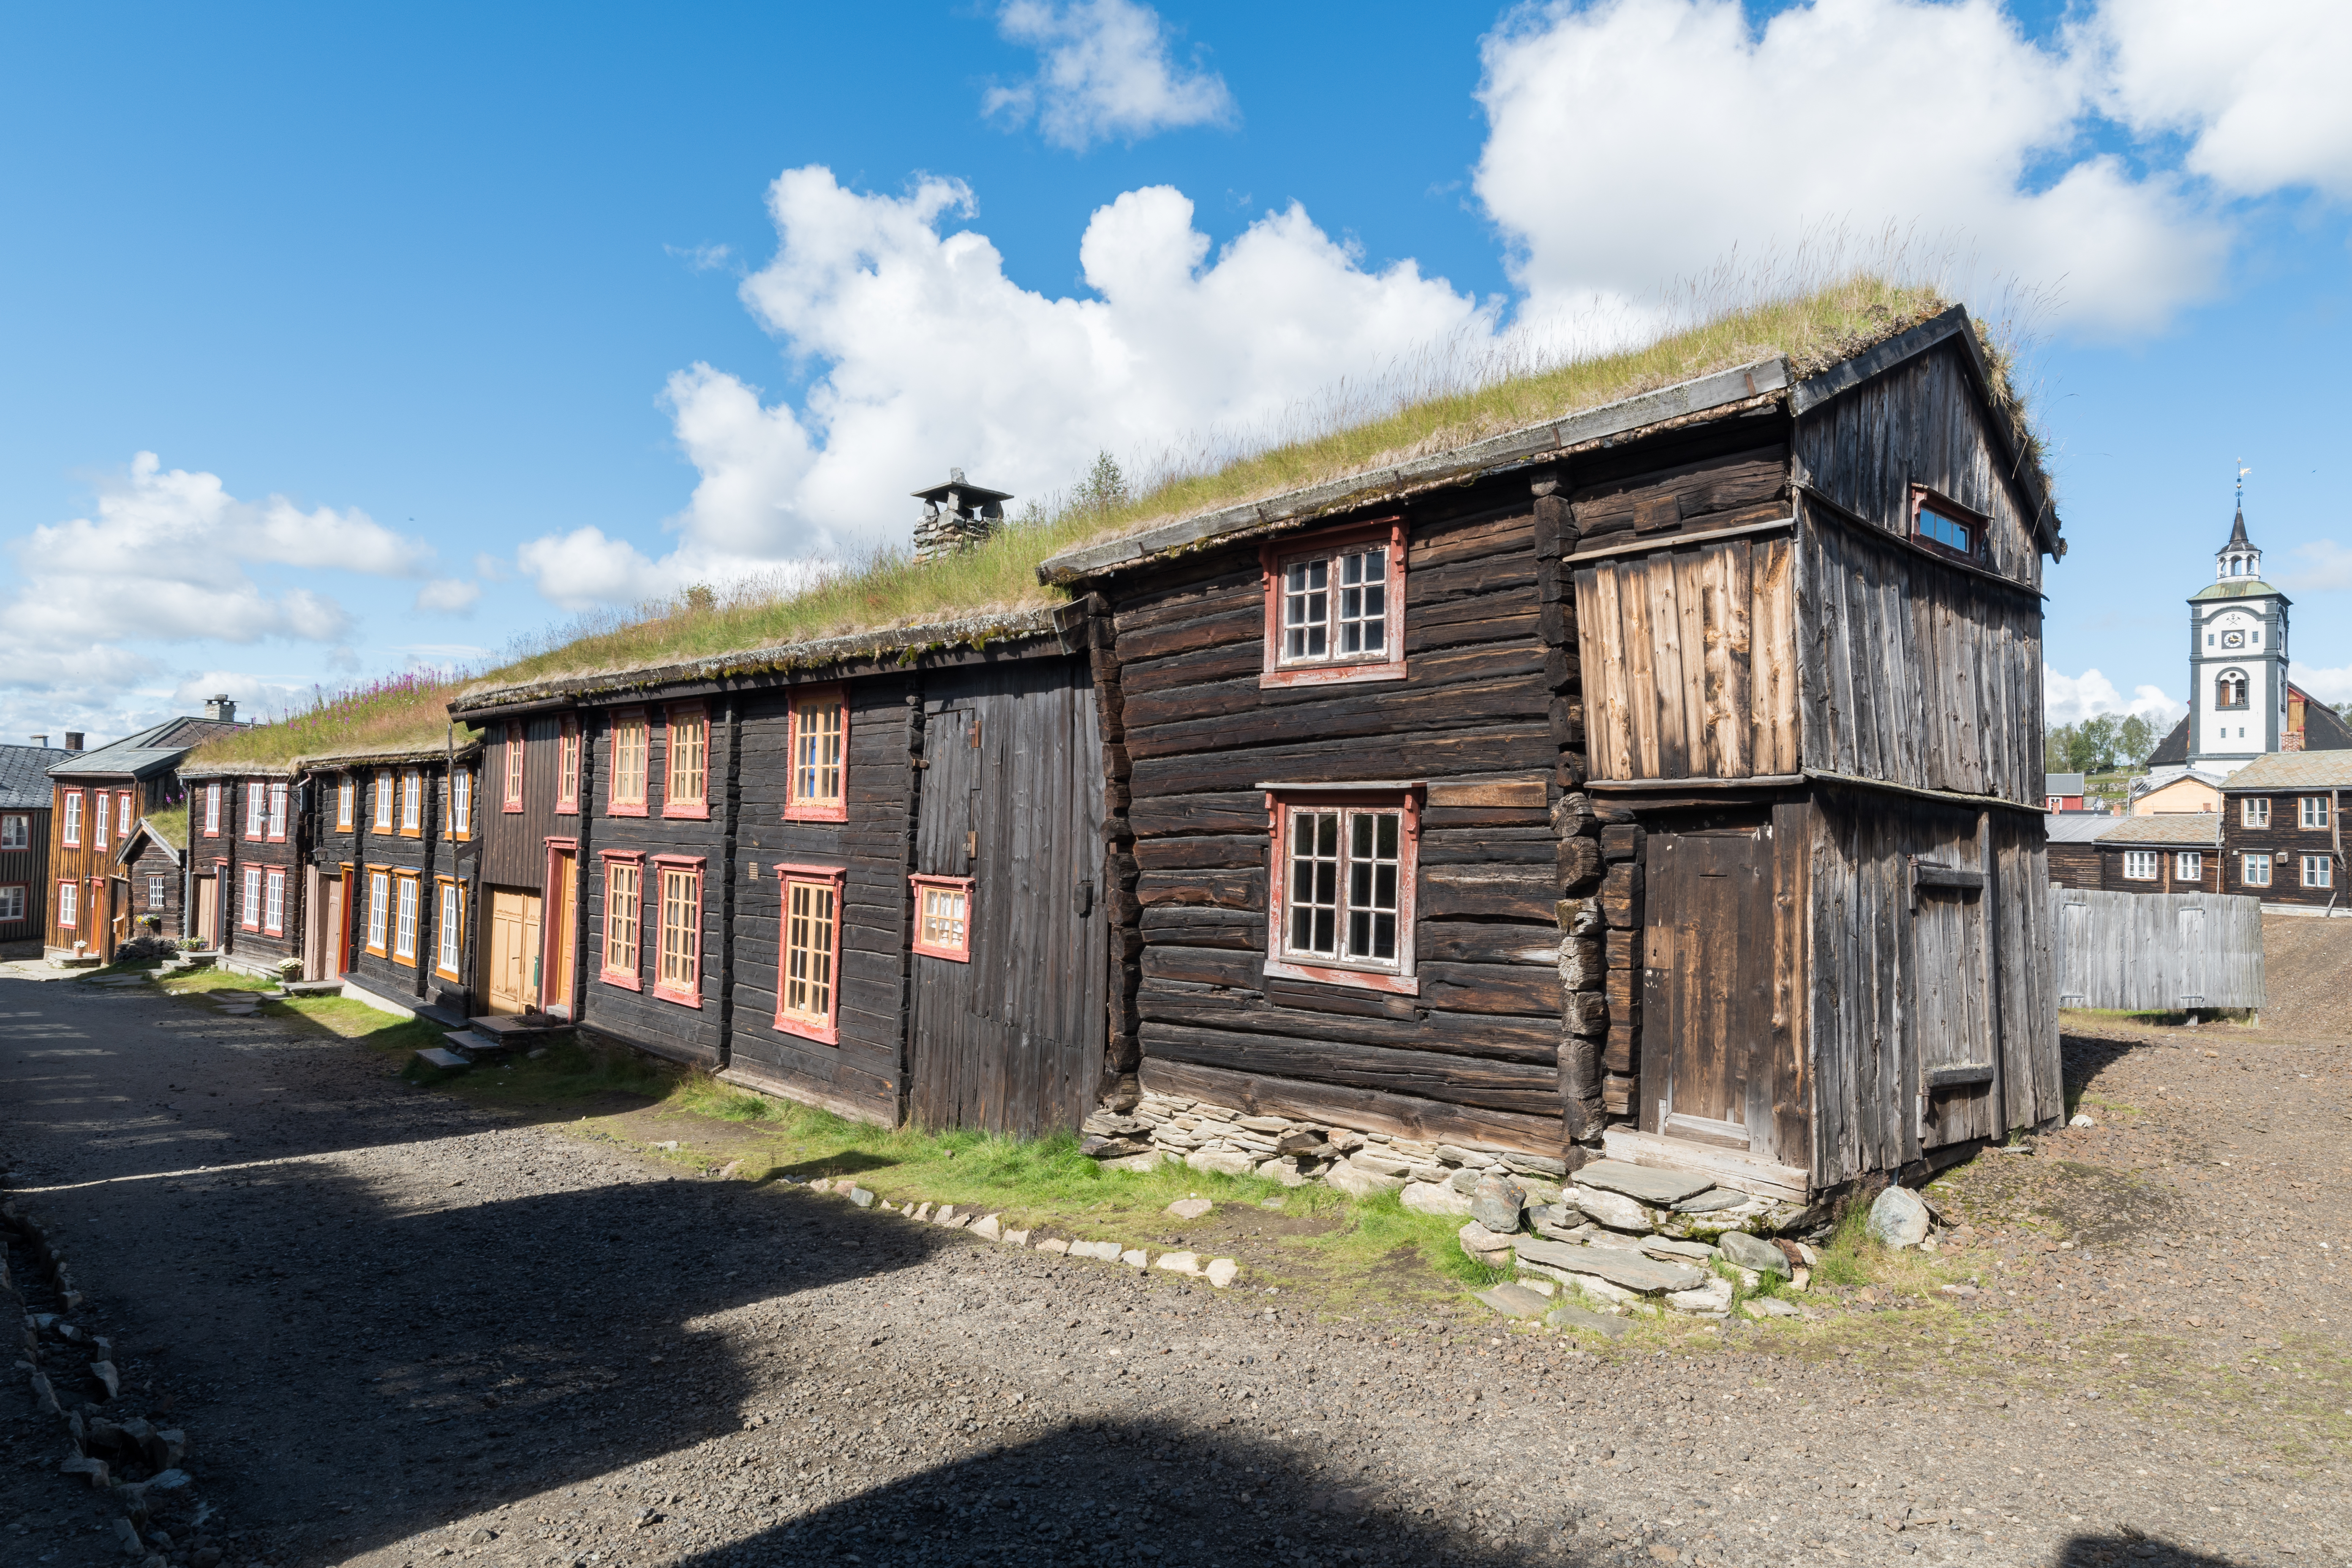 Old wooden buildings in Røros